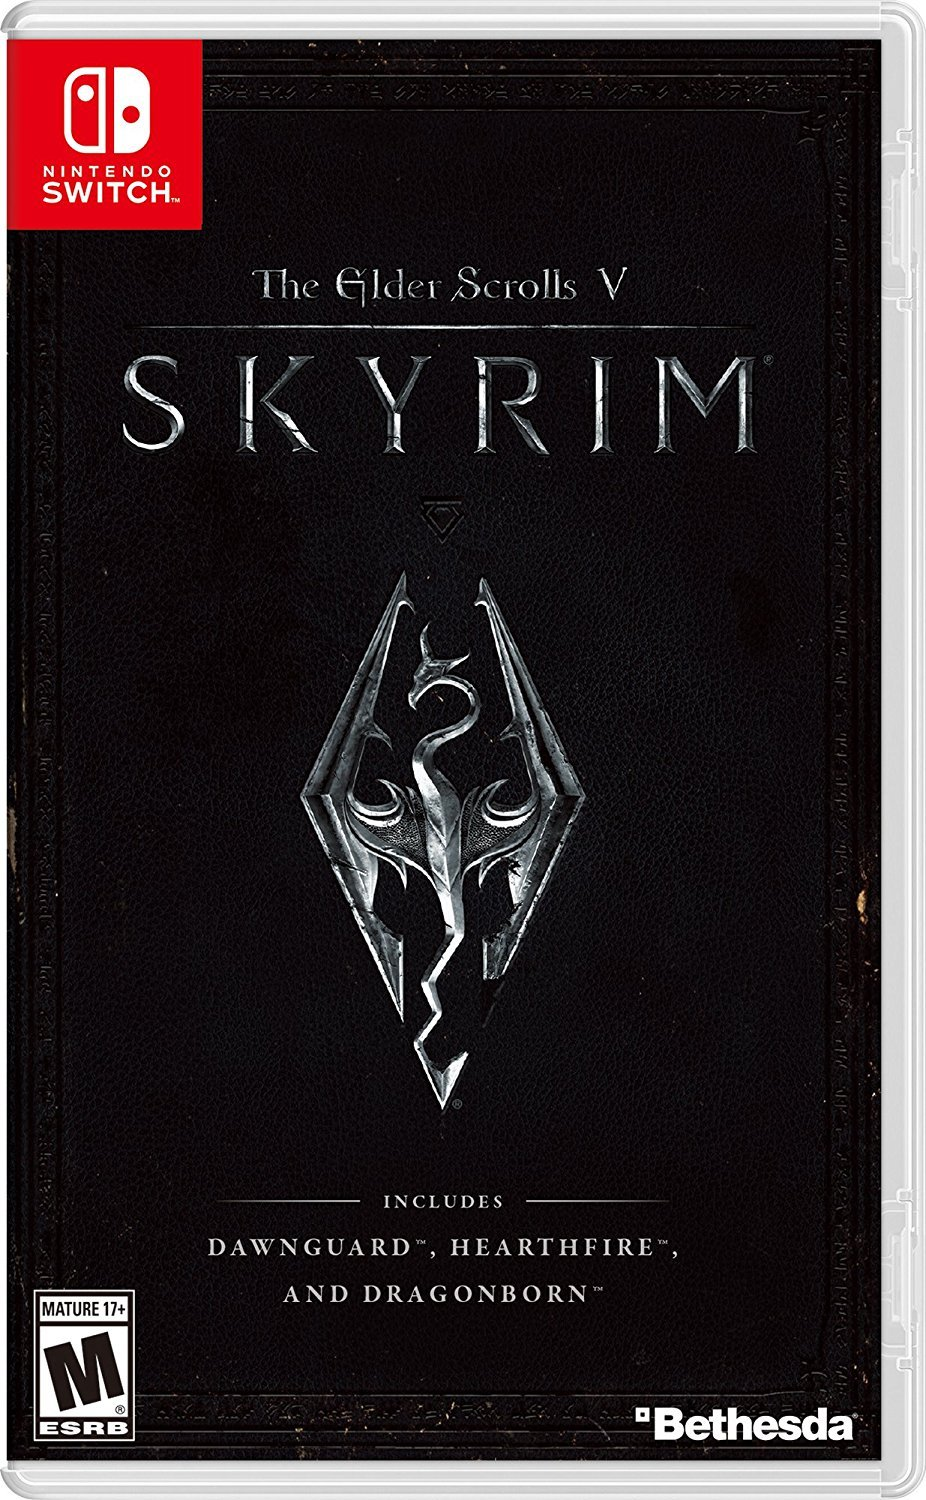 The Elder Scrolls V: Skyrim - Nintendo Switch [Digital Code]